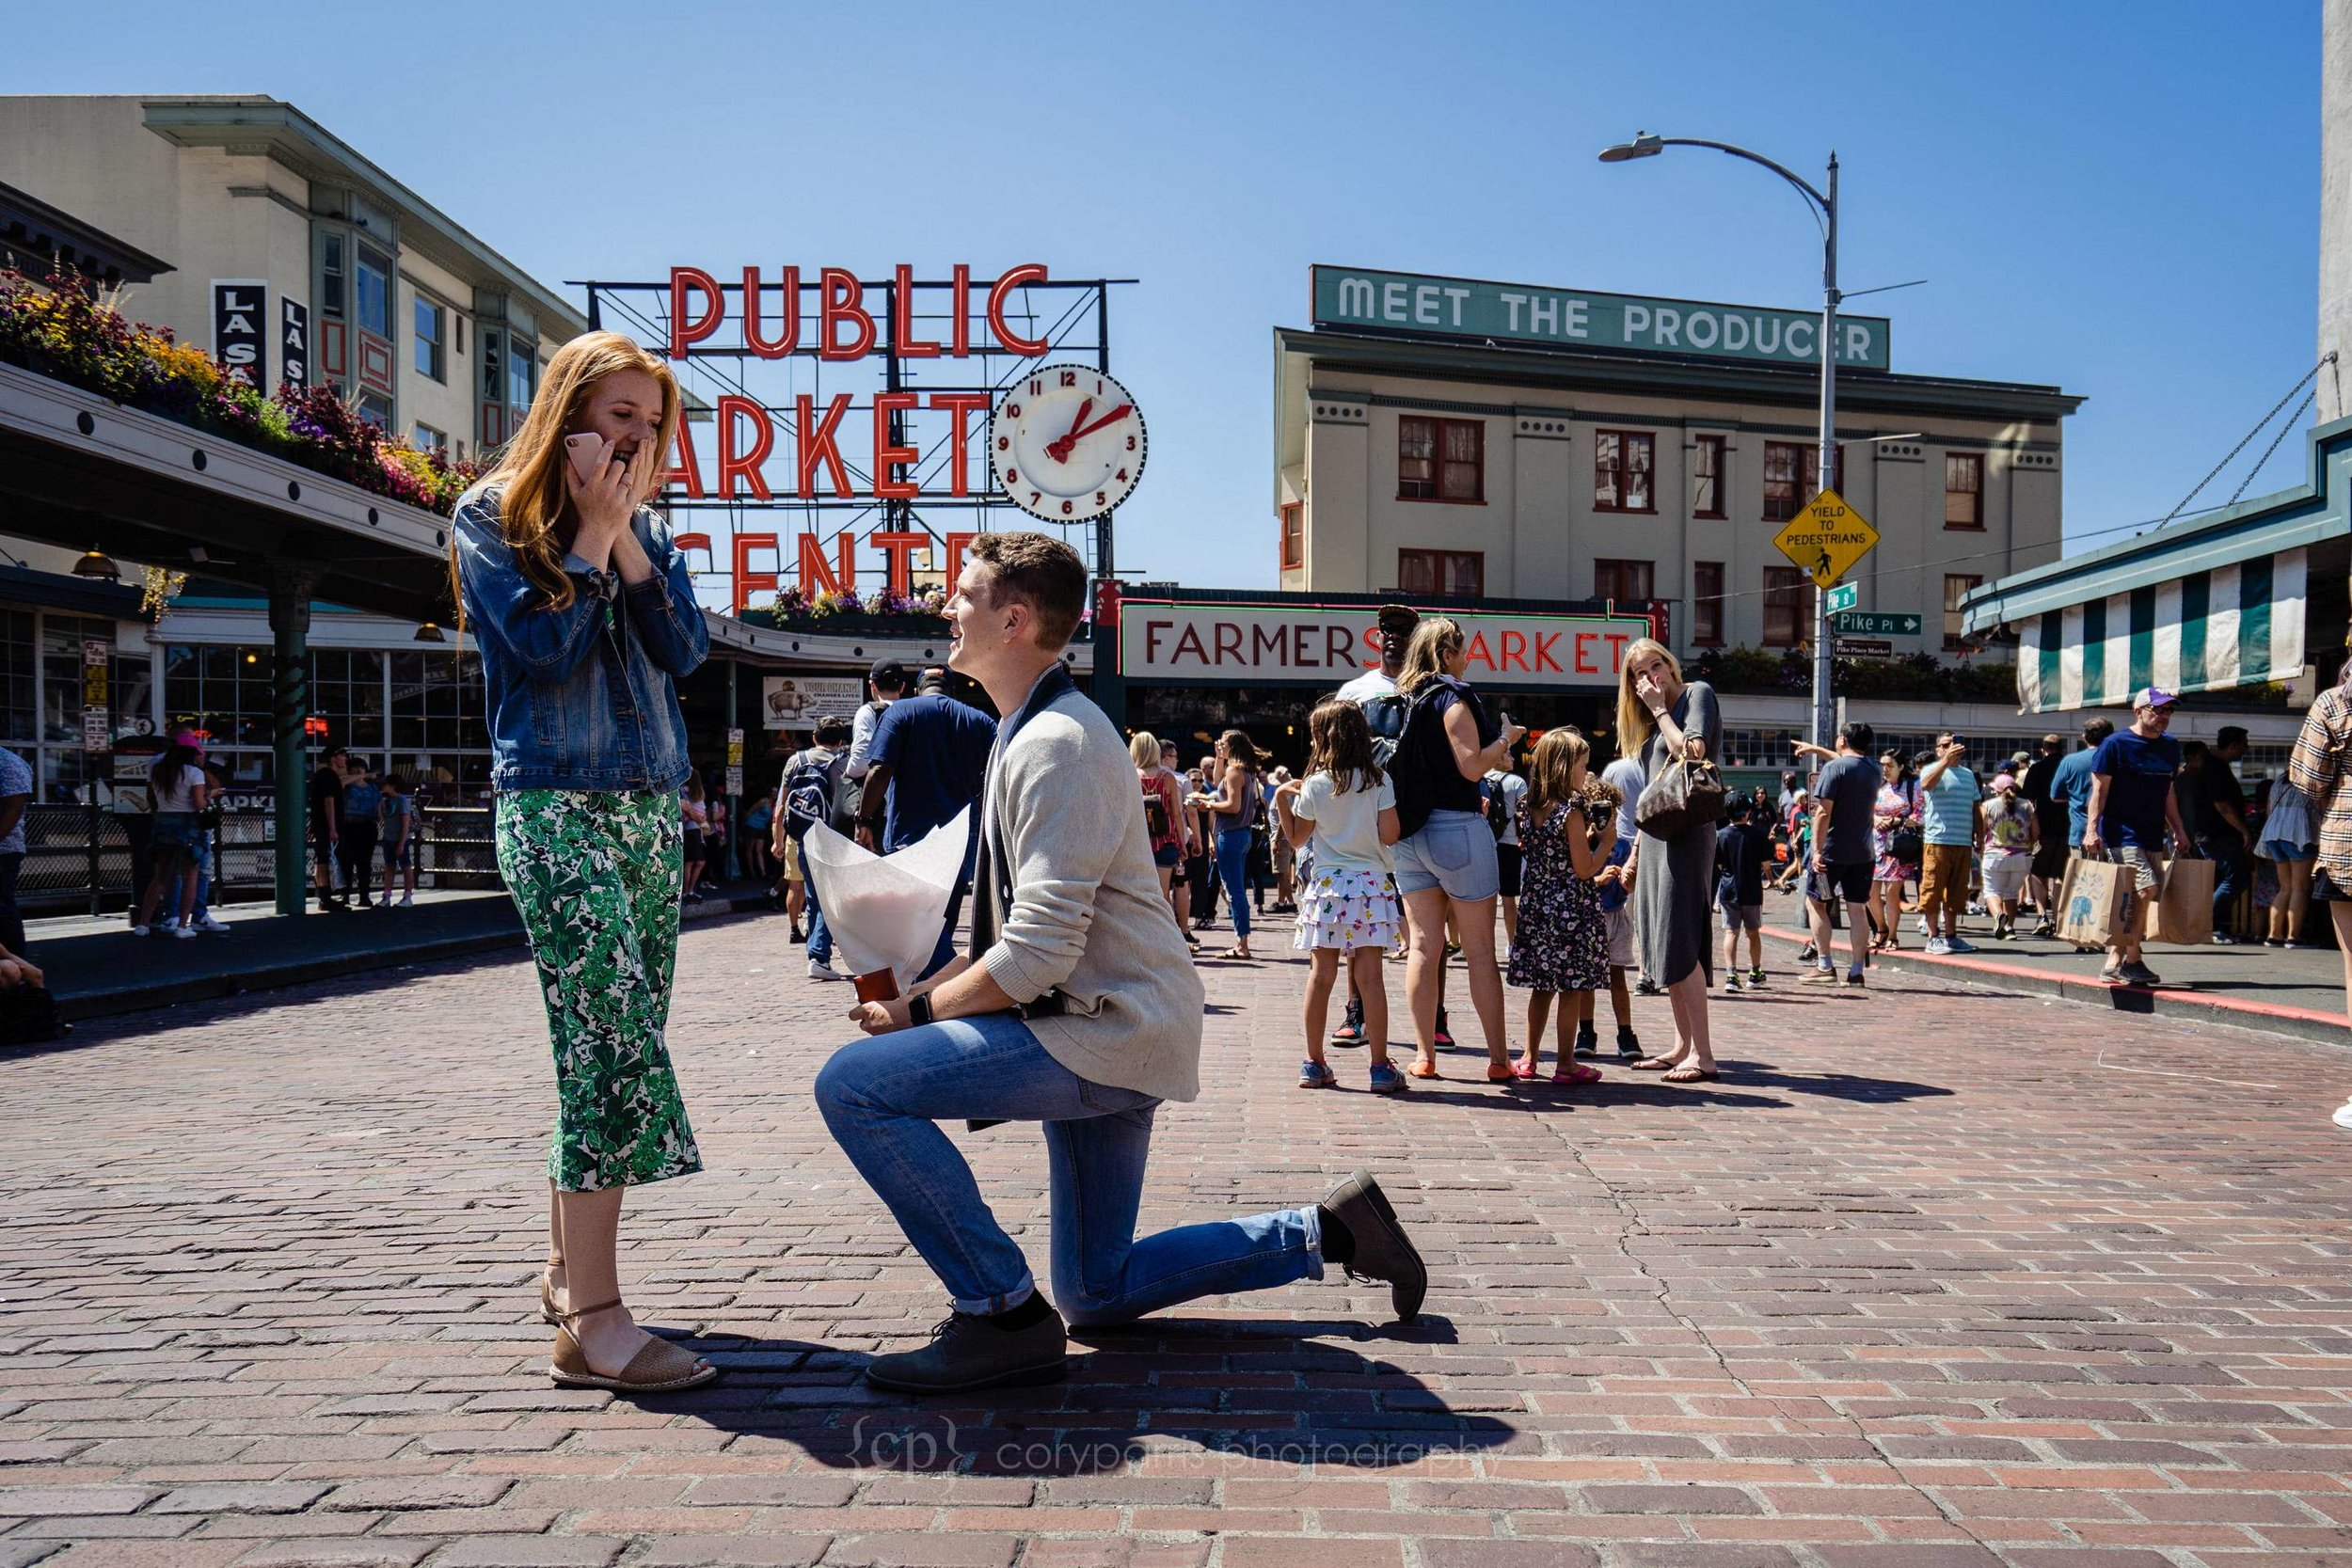 Matt on one knee as Madeline reacts to the proposal